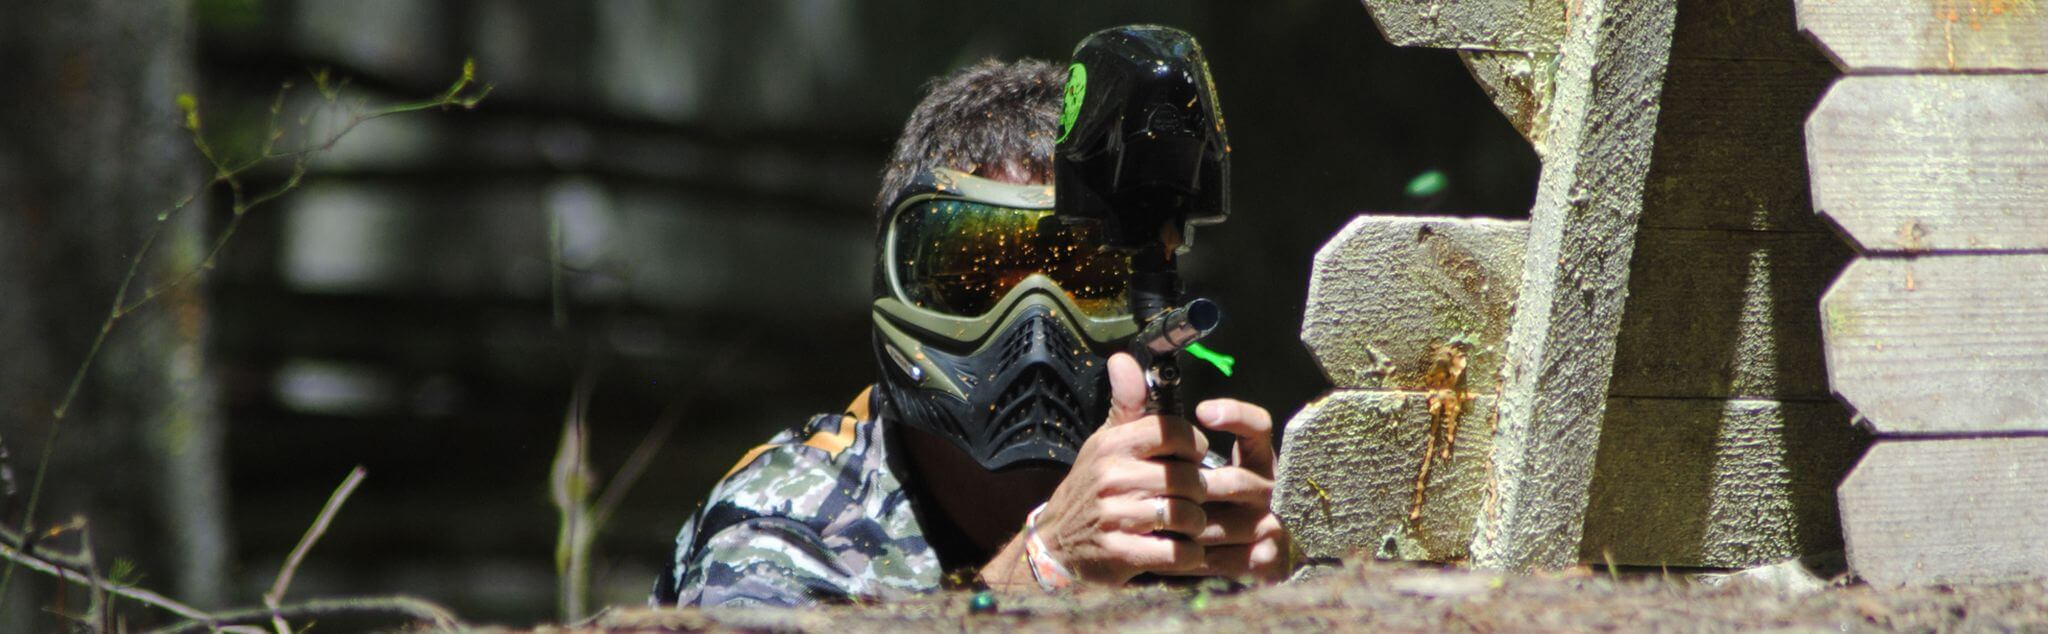 Paintball en Palencia